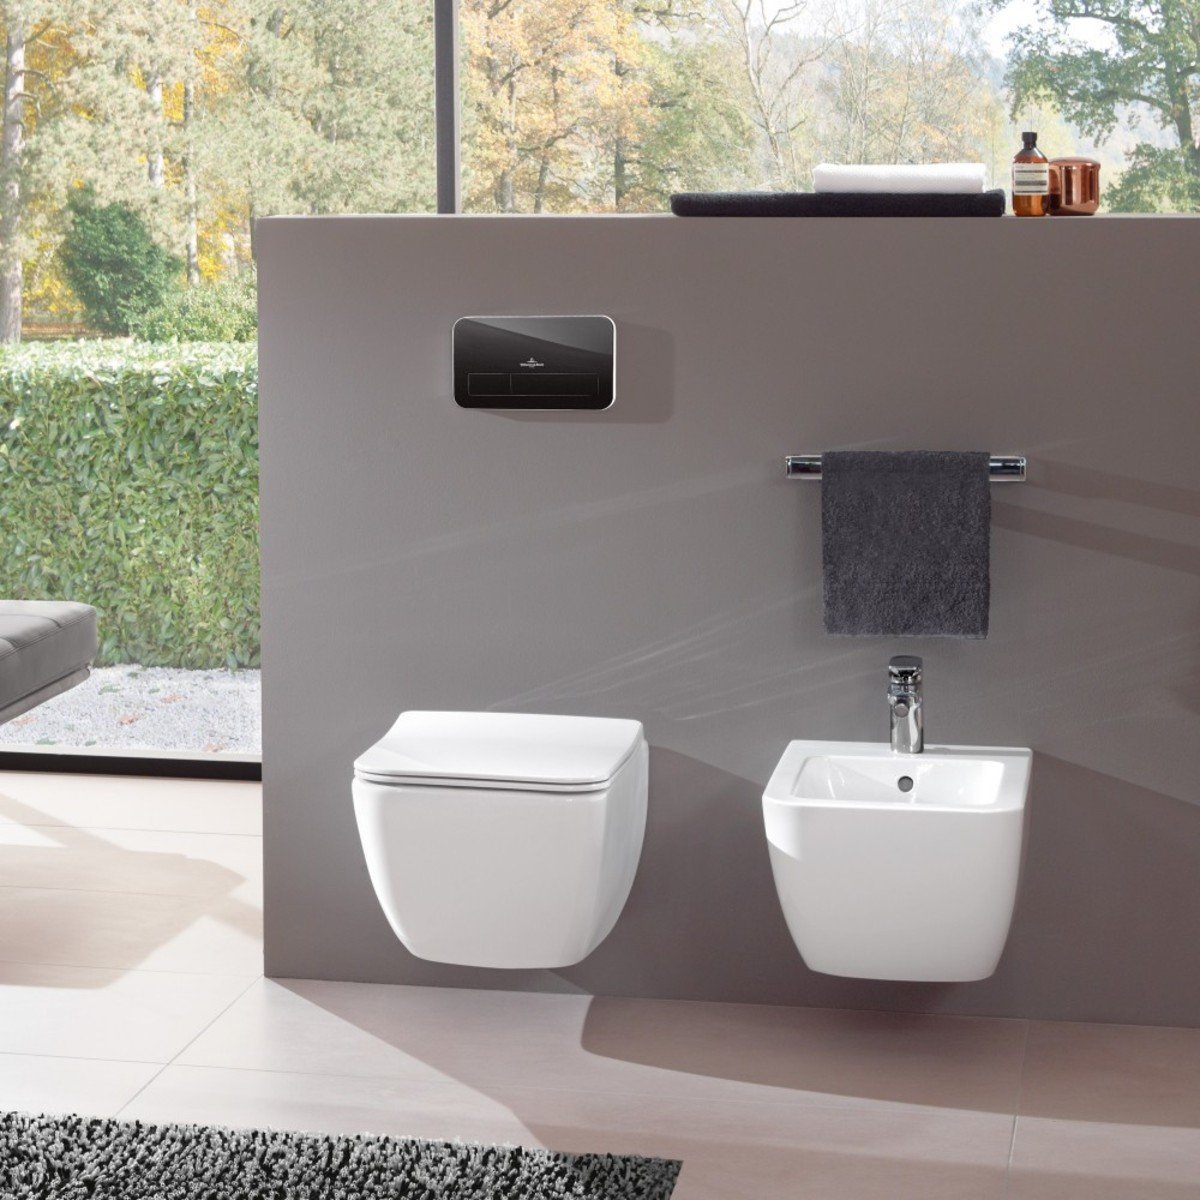 villeroy en boch legato wandbidet met kraangat. Black Bedroom Furniture Sets. Home Design Ideas